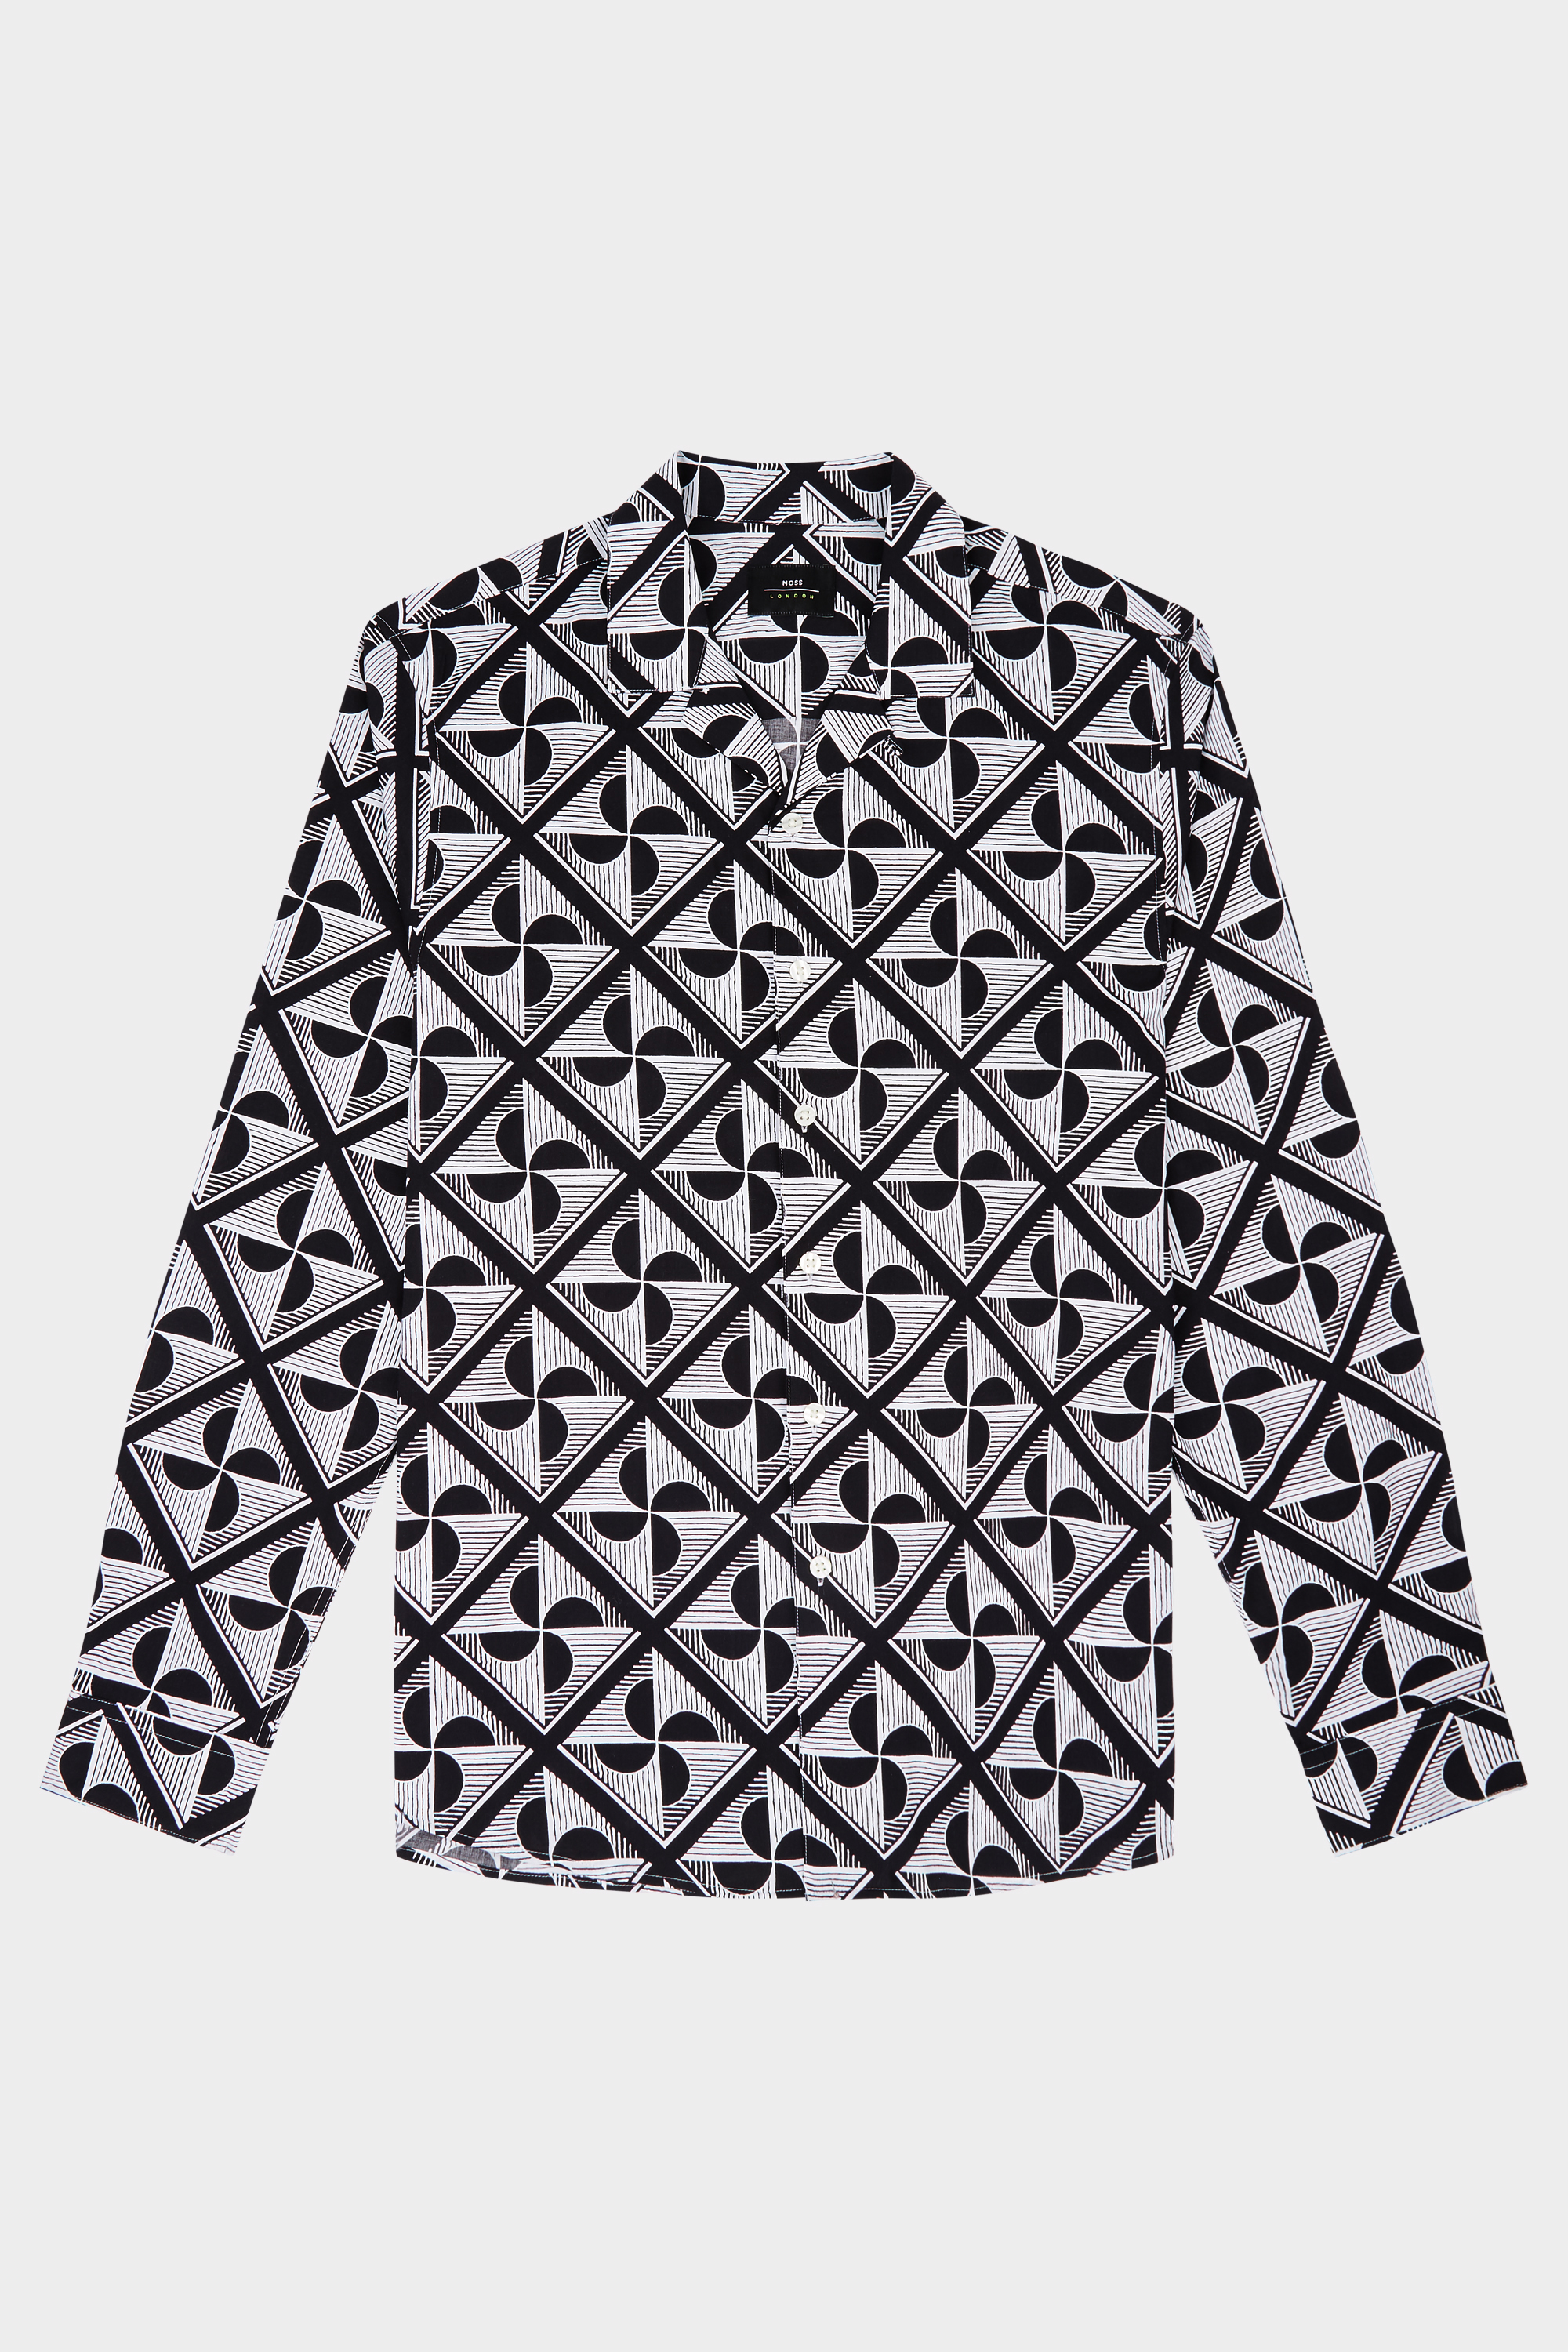 Moss Bros Moss London Skinny Fit Black & White Geo Print Casual Shirt